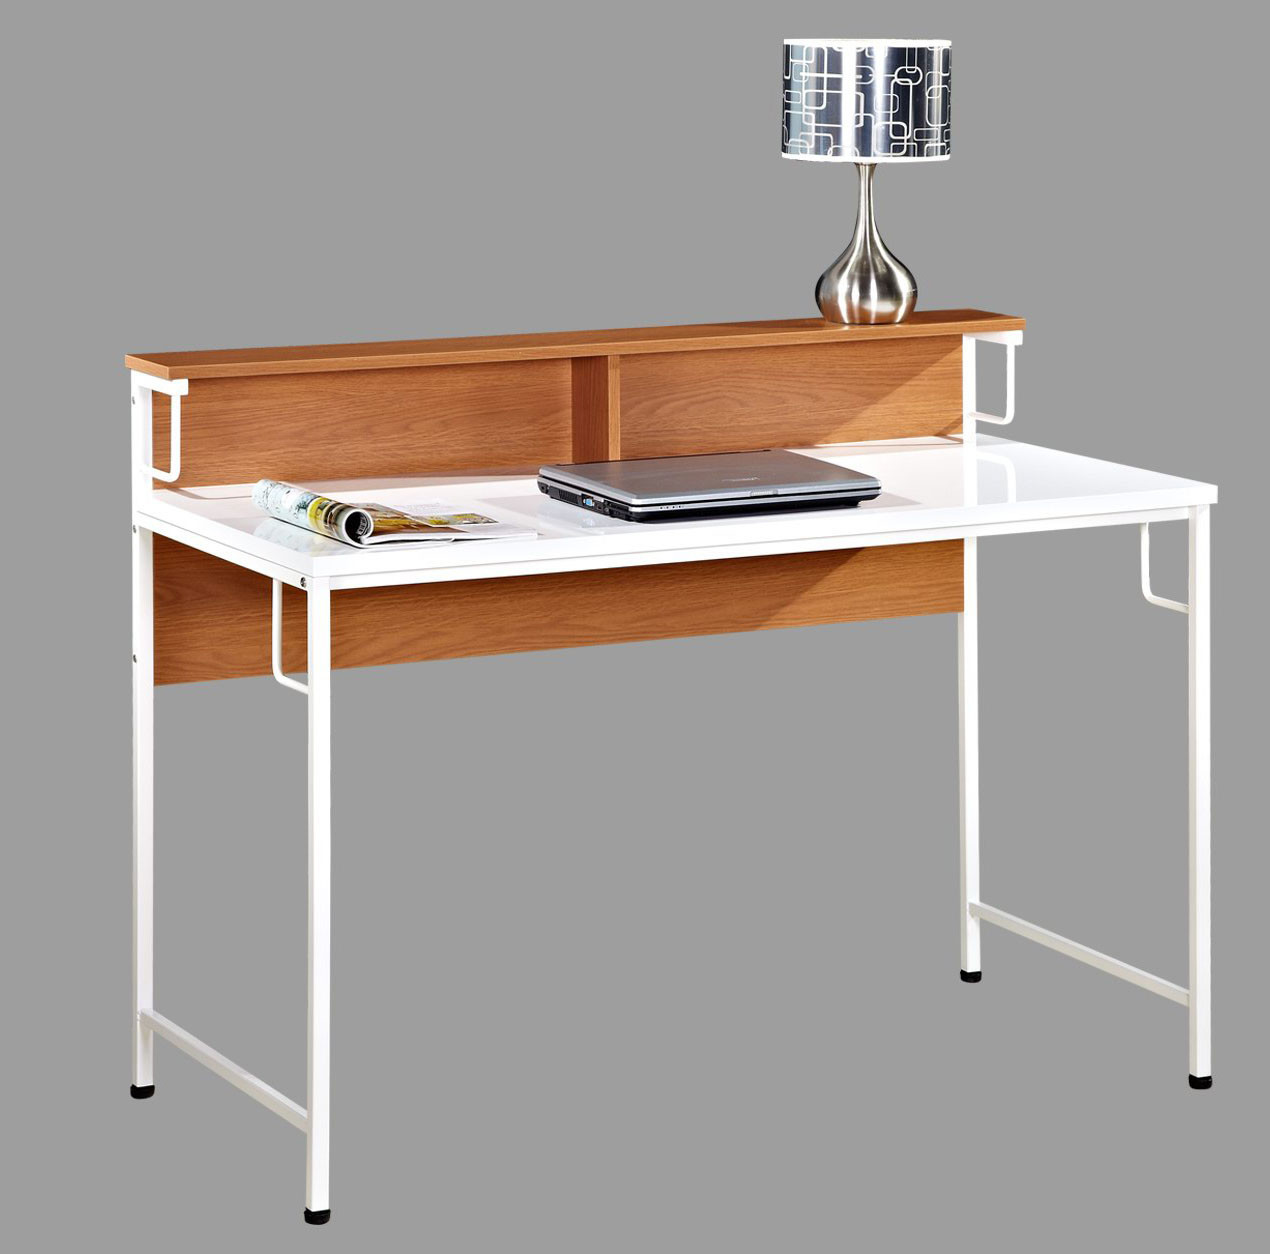 Sku hual1151 marty small writing desk is also sometimes listed under the following manufacturer numbers at1500